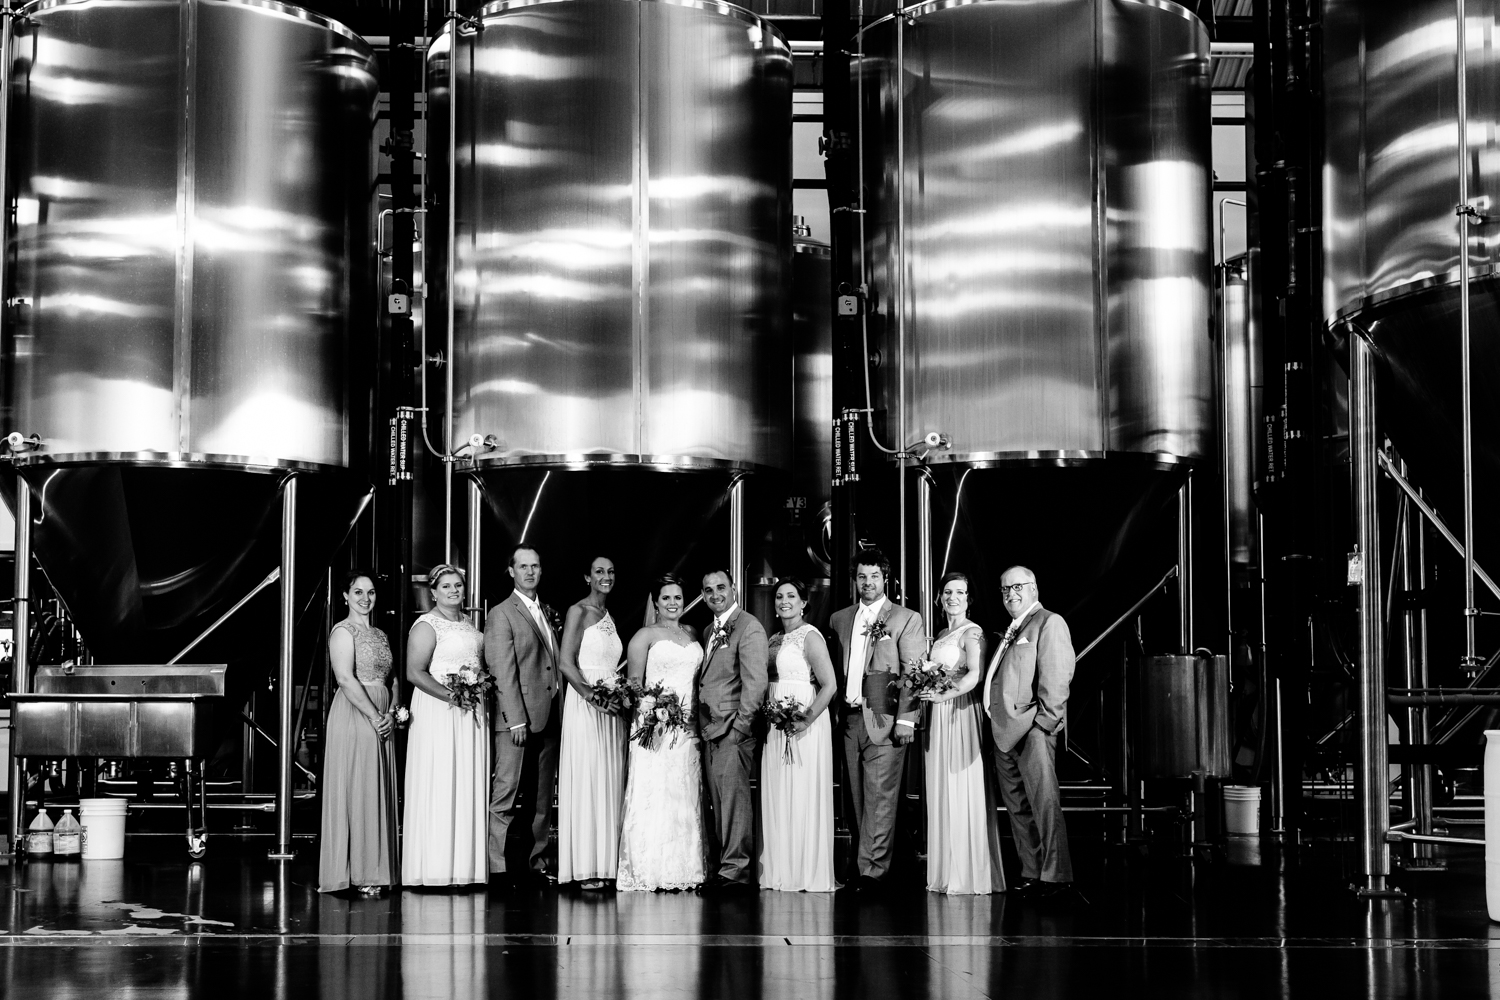 Black and white image of the bridal party in front of brewery equipment at Empire Brewery.